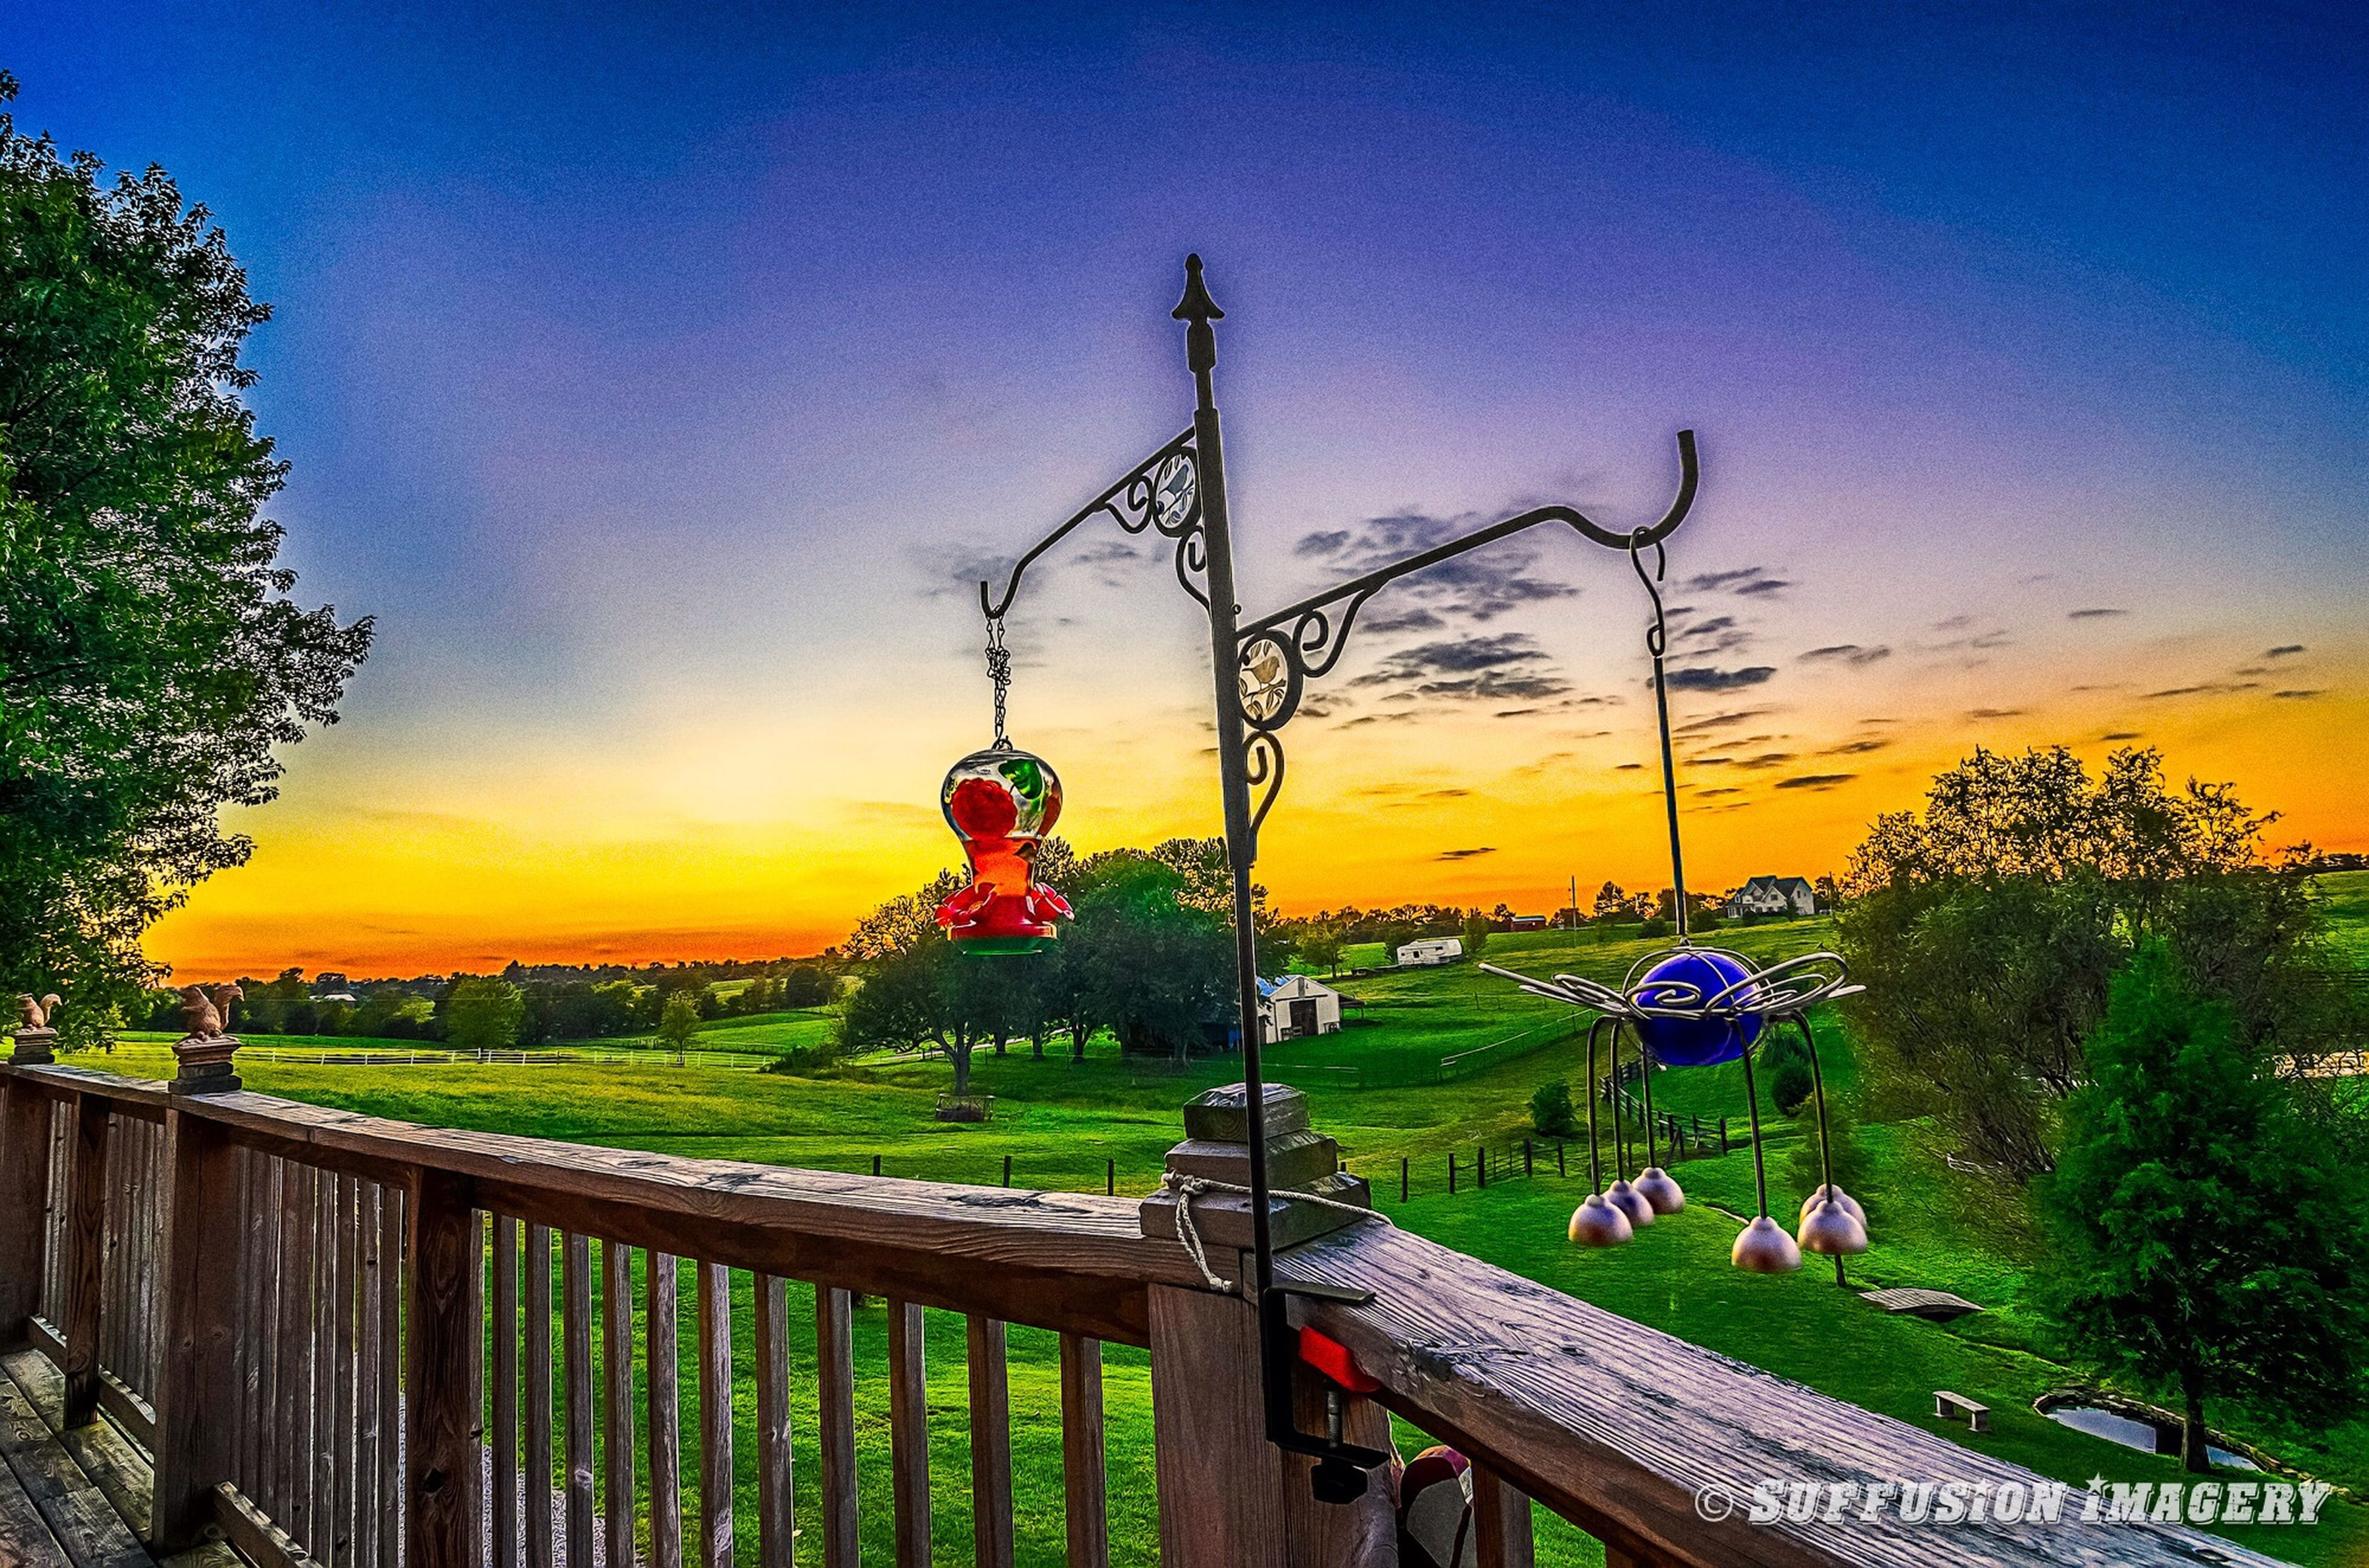 sky, fence, flower, tree, railing, blue, nature, beauty in nature, field, growth, plant, tranquility, sunset, yellow, protection, park - man made space, tranquil scene, scenics, cloud - sky, safety